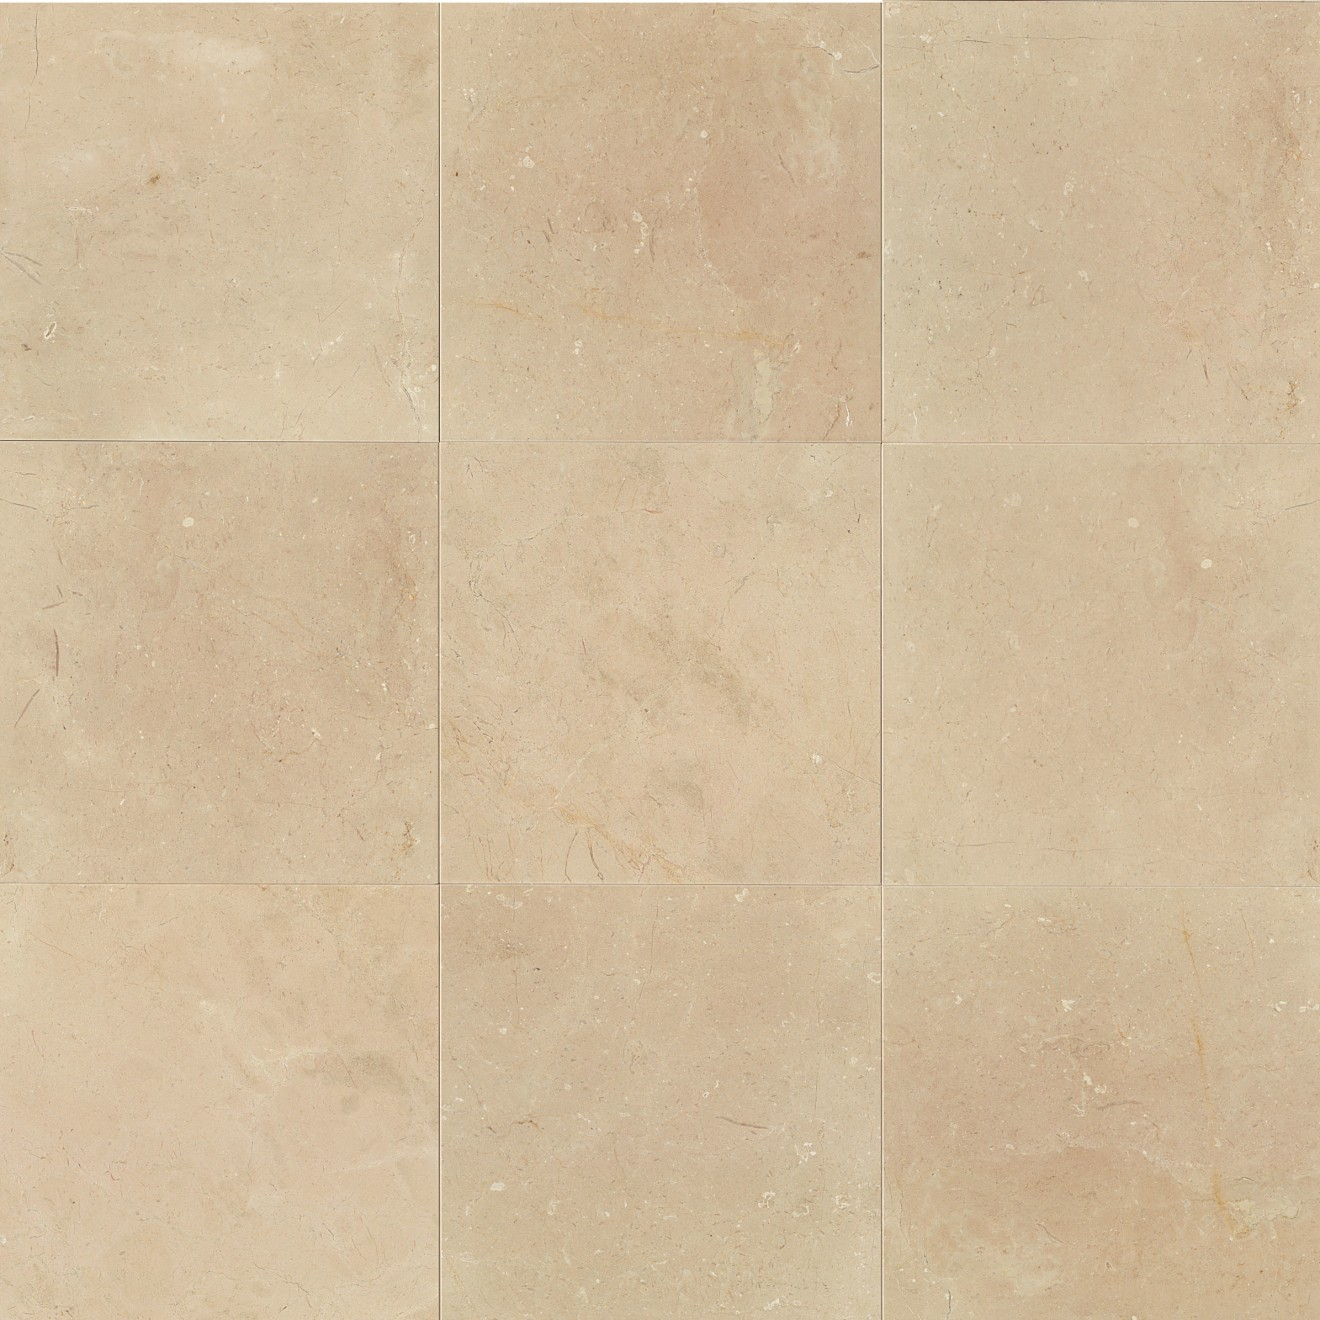 Crema Marfil Classic 18 X 18 X 12 Floor And Wall Tile